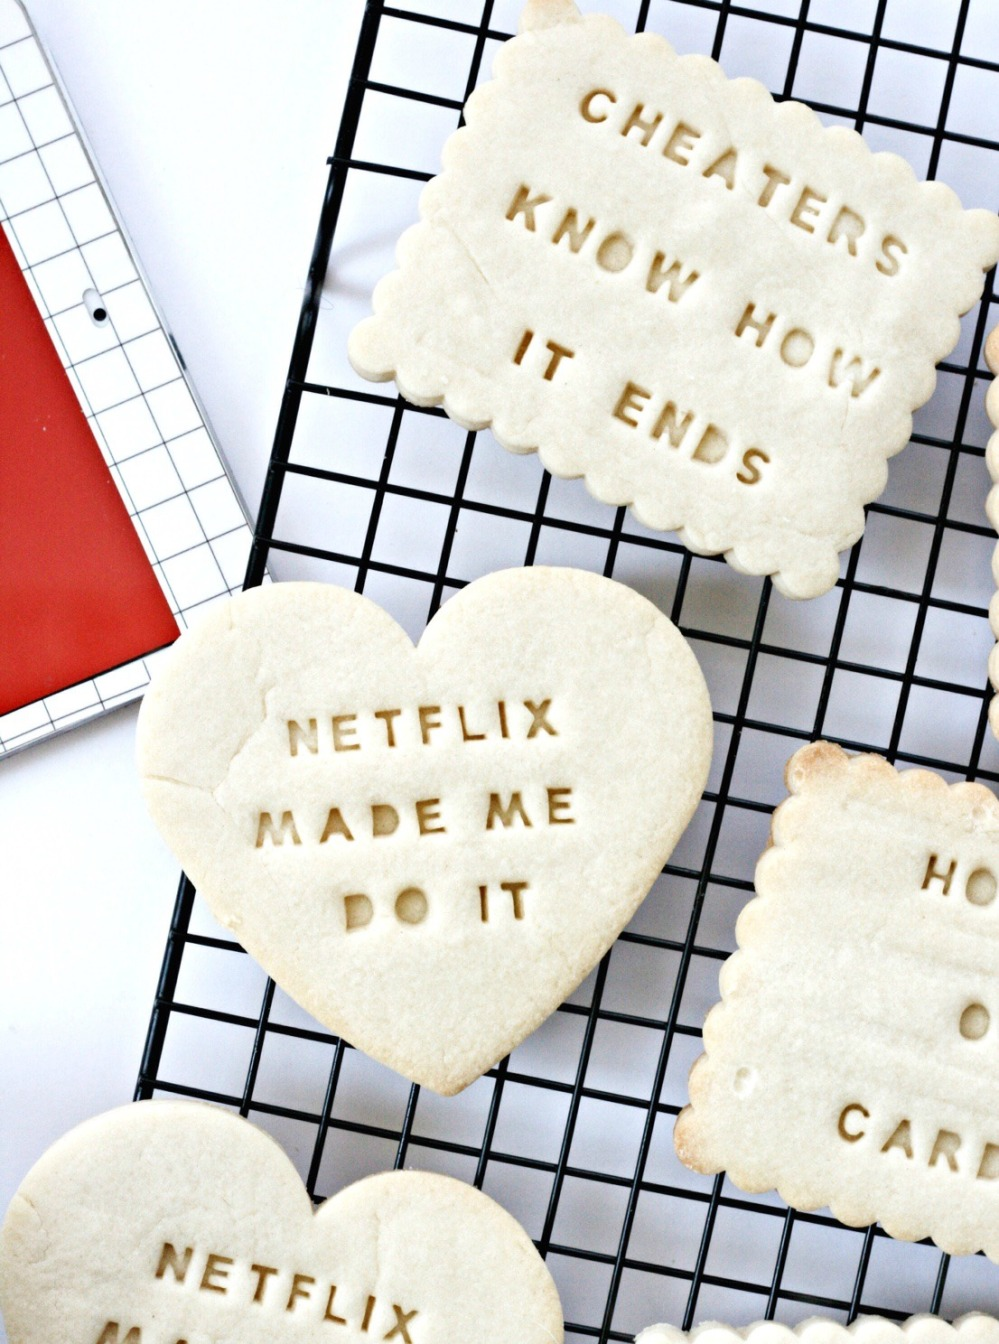 netflix-made-me-do-it-cheating-cookie